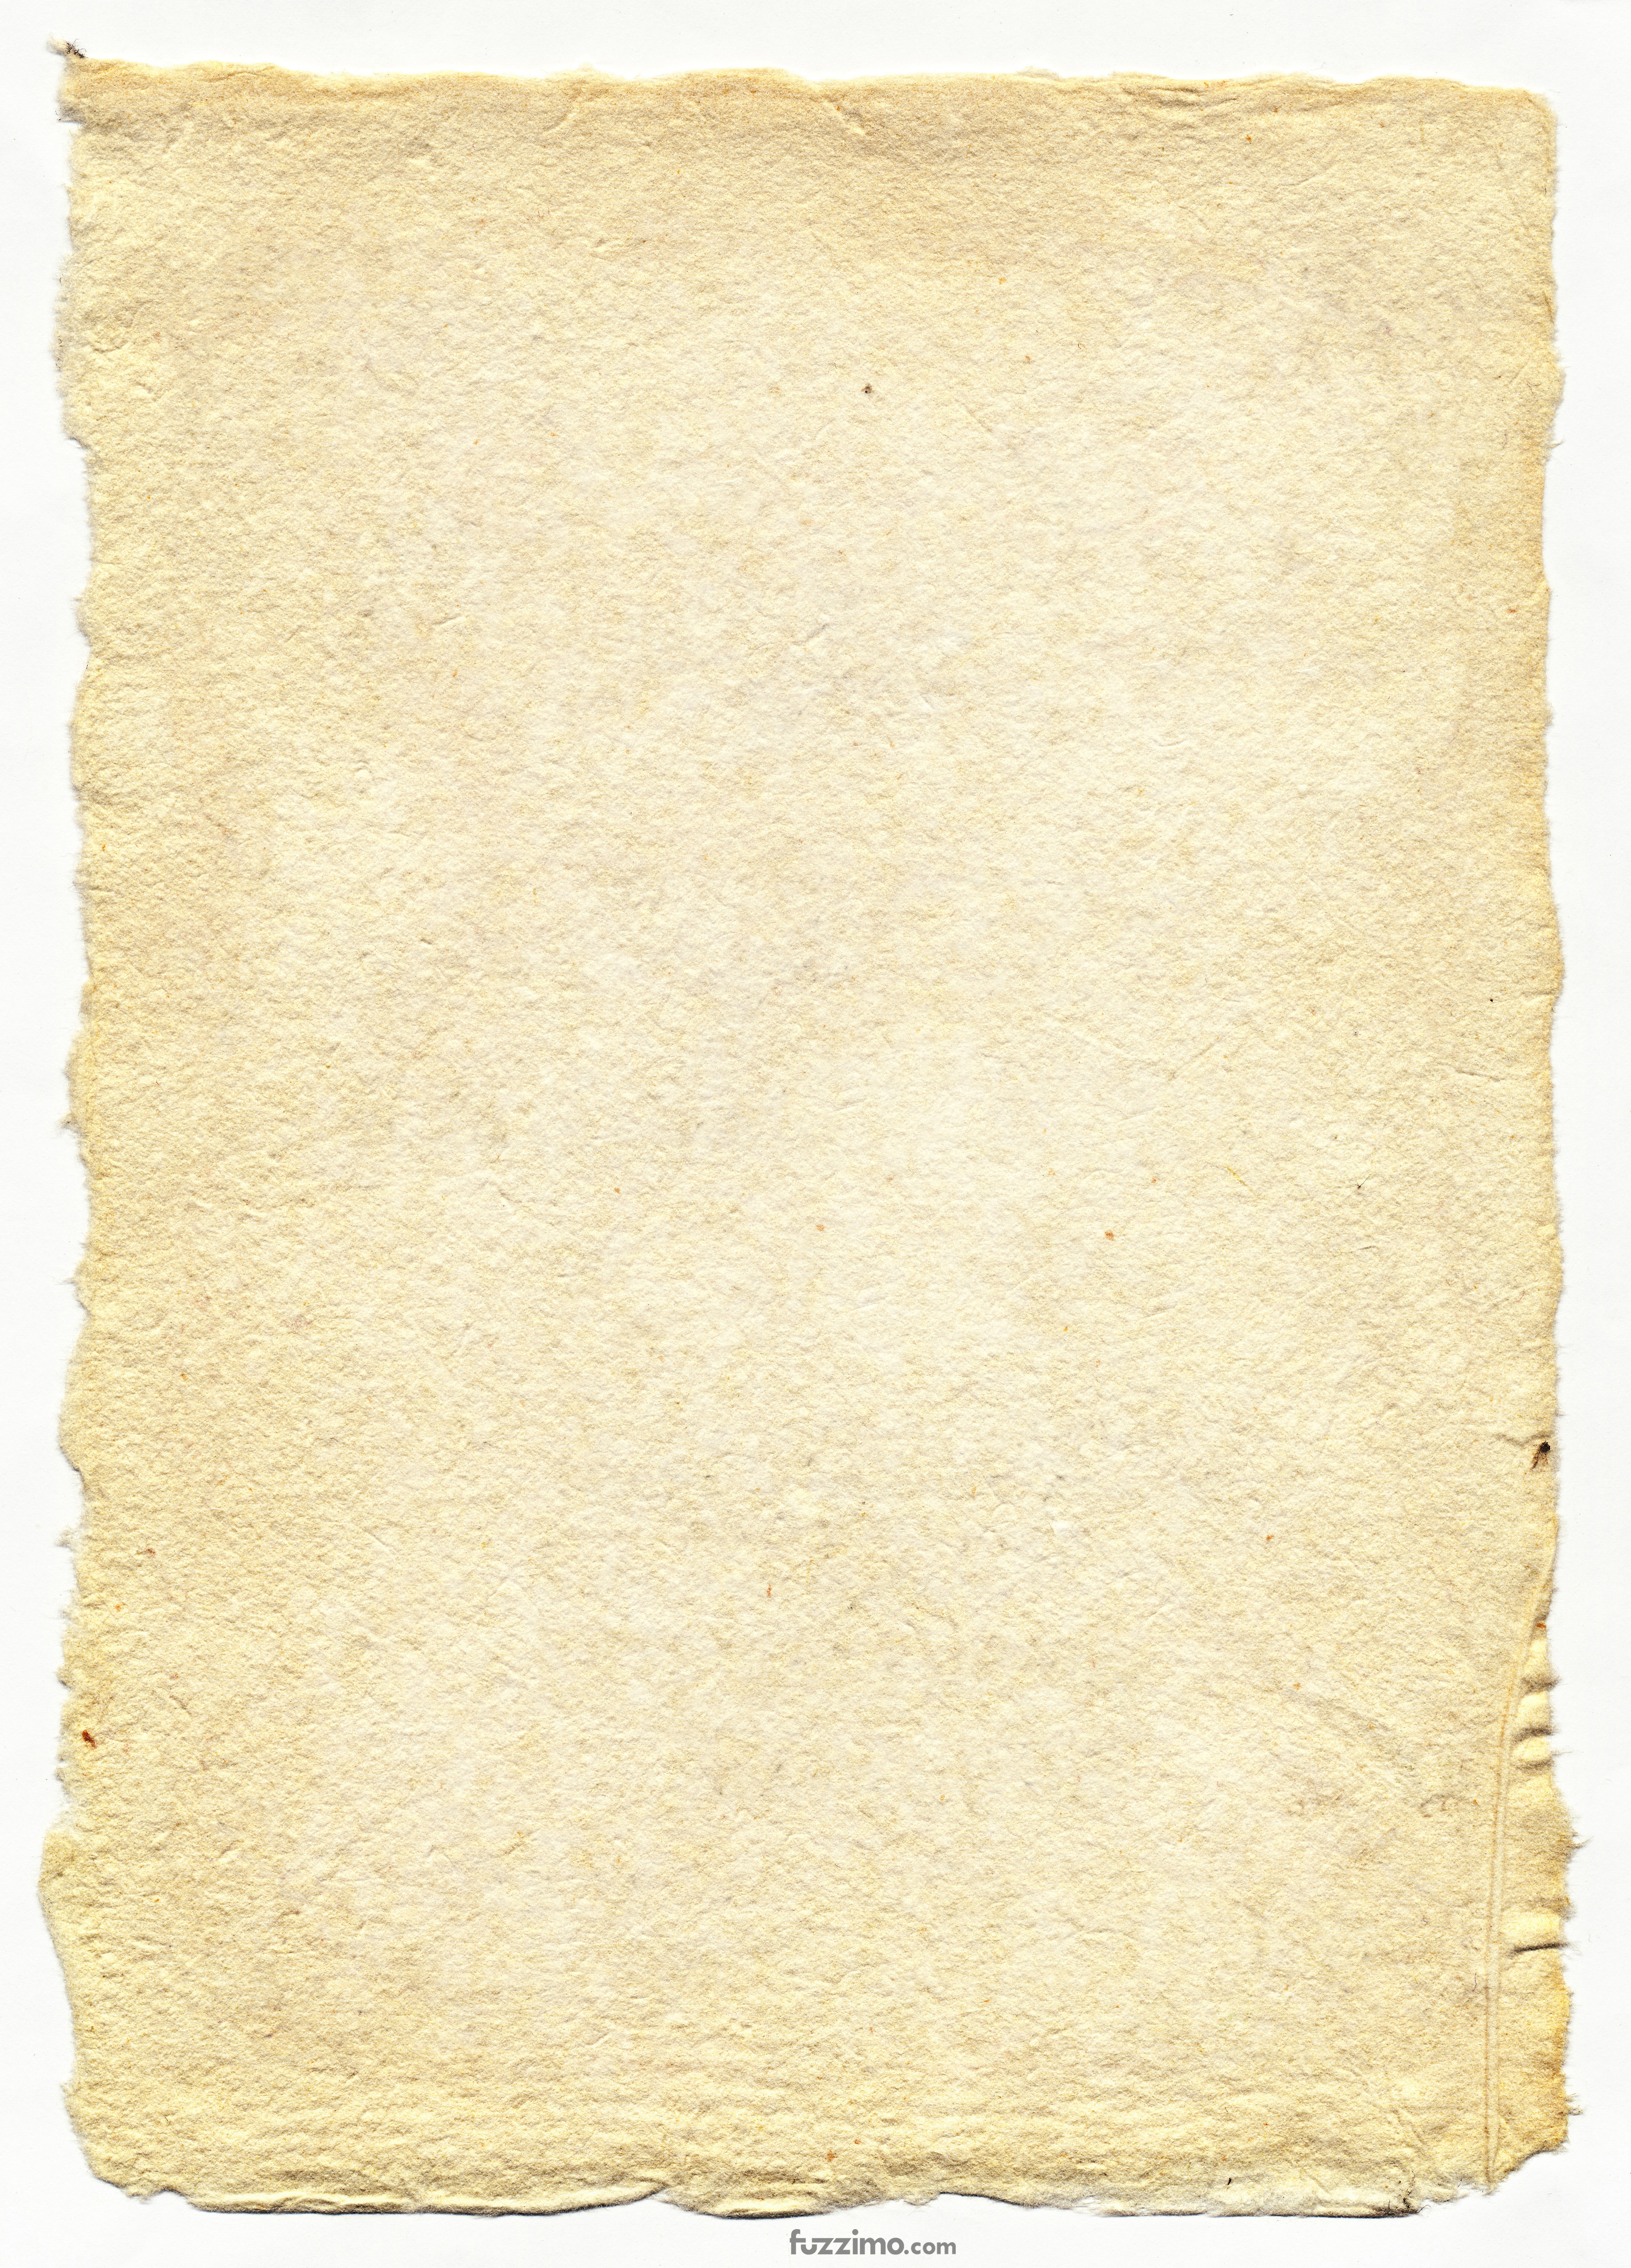 All sizes | Rough Edge Old Paper 02 | Flickr - Photo Sharing!